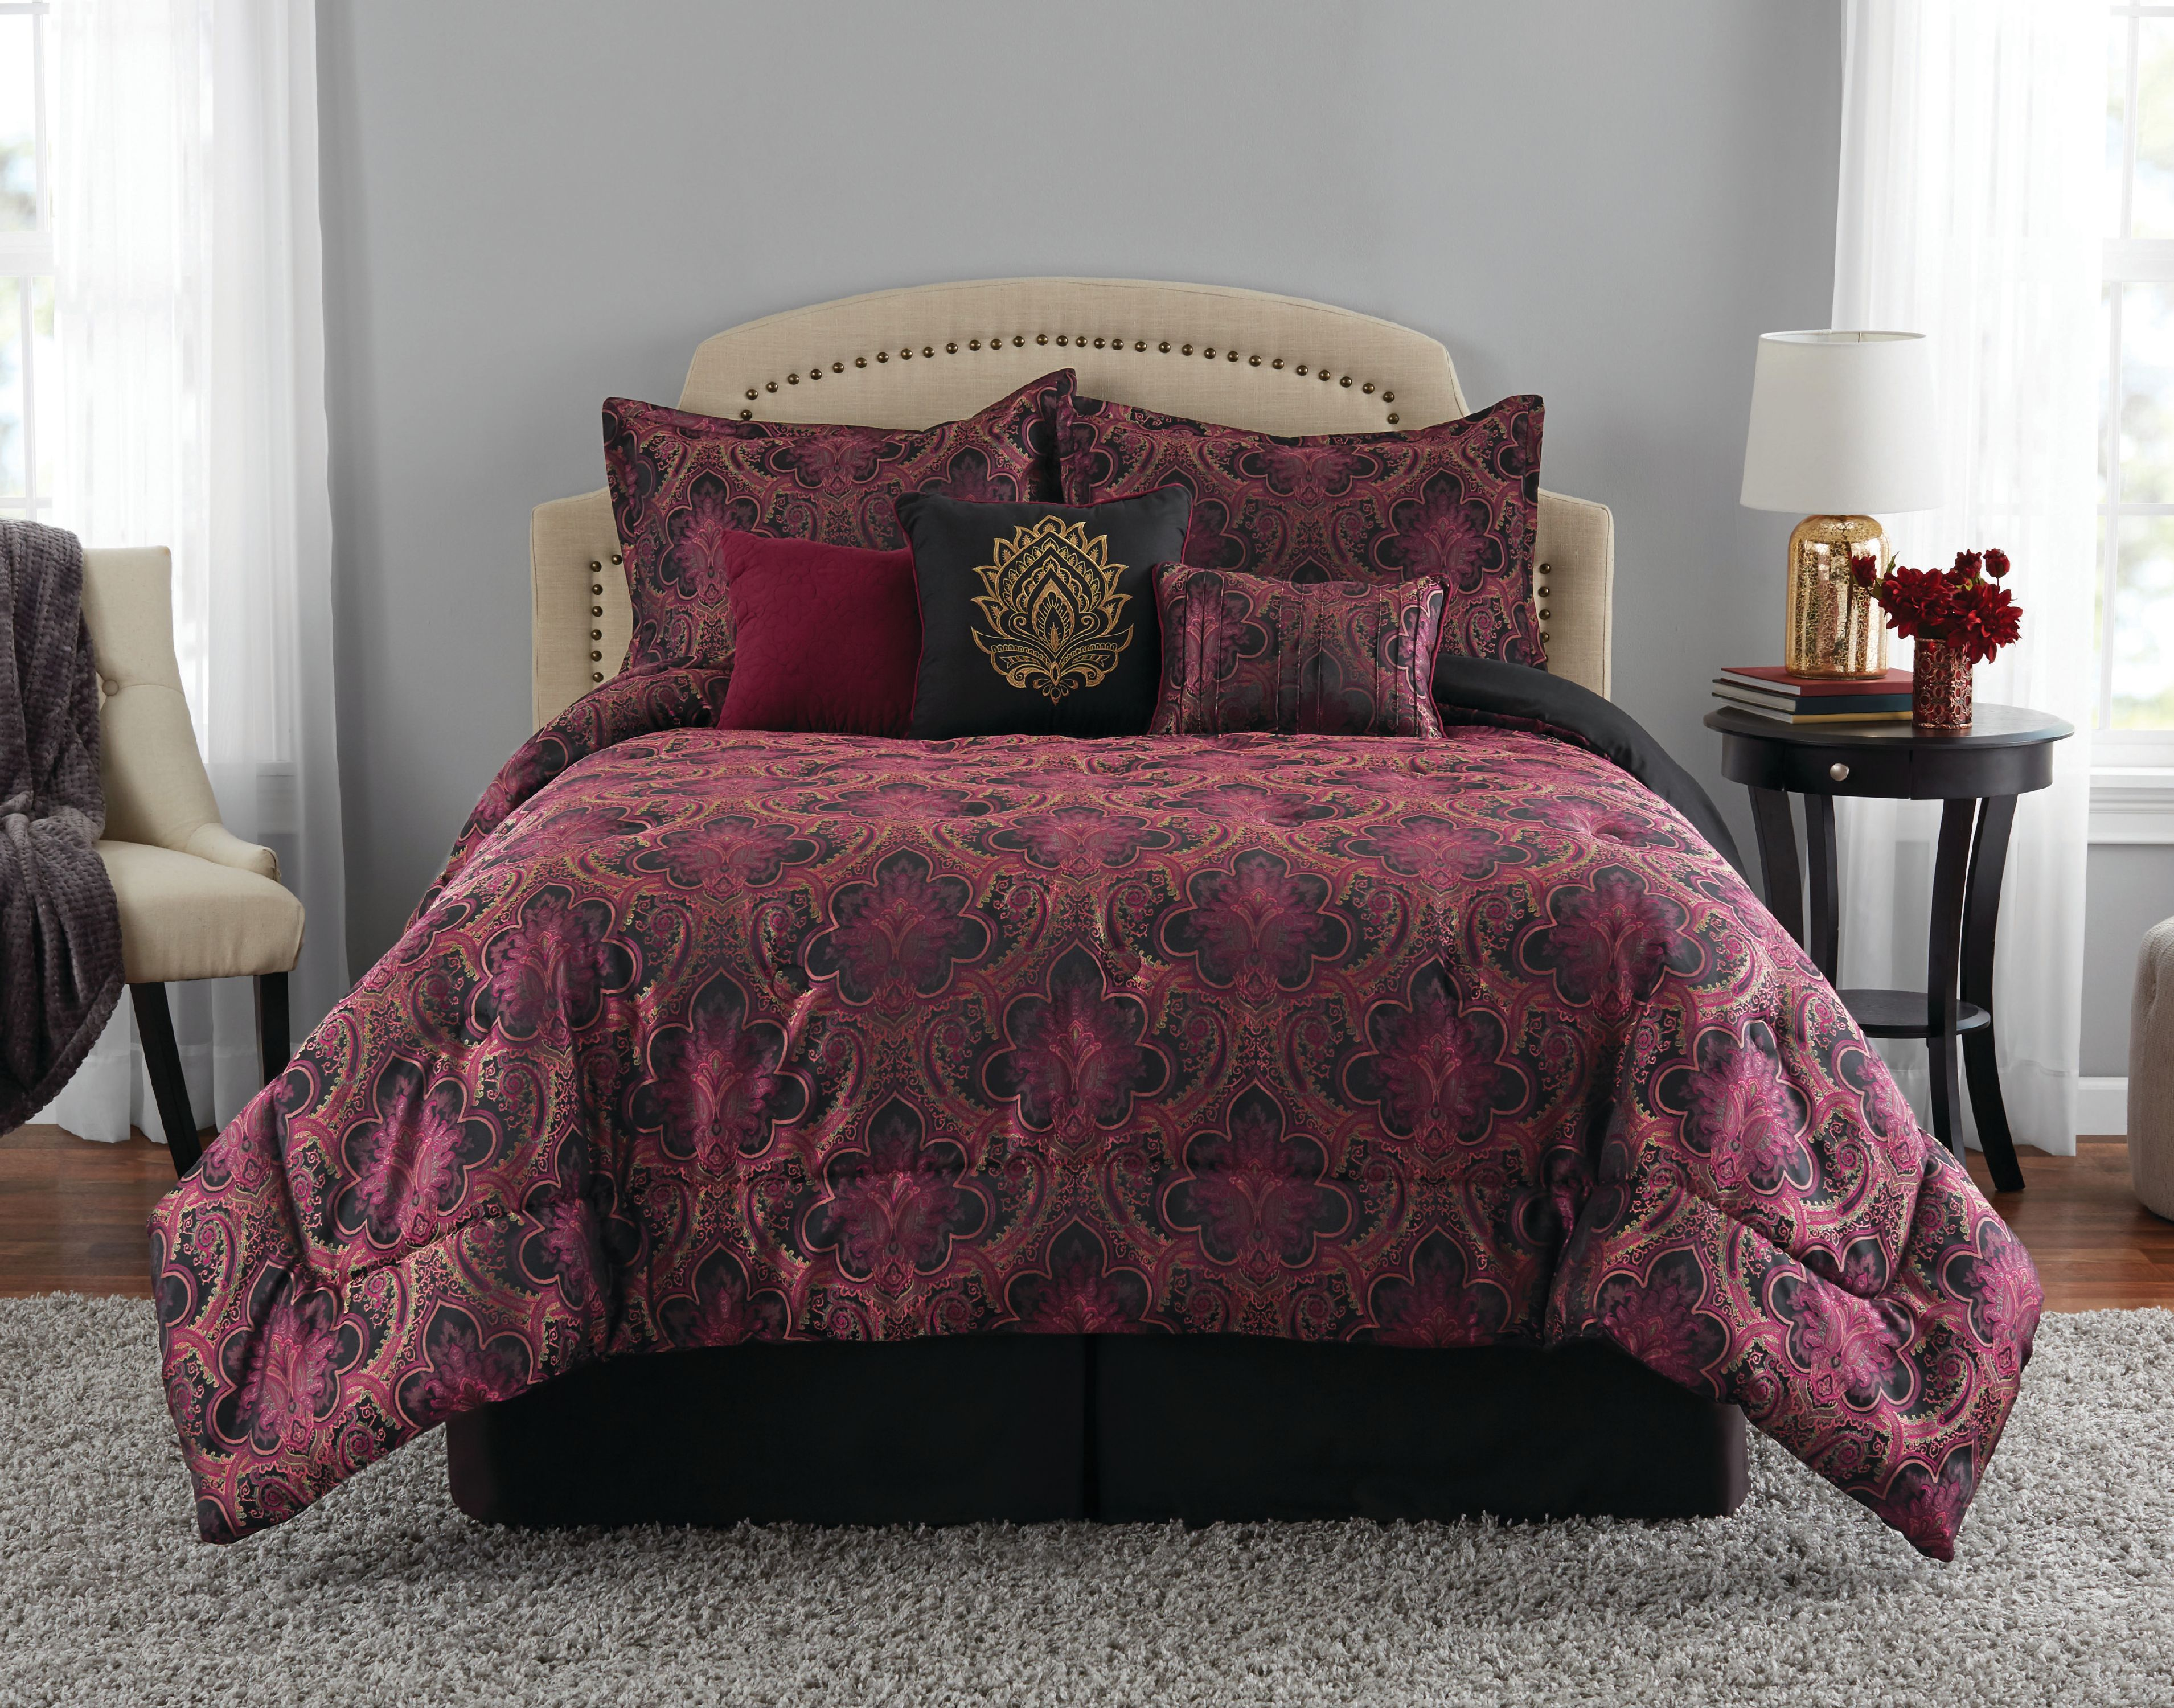 mainstays morocco luxury red black floral 7 piece comforter set full queen